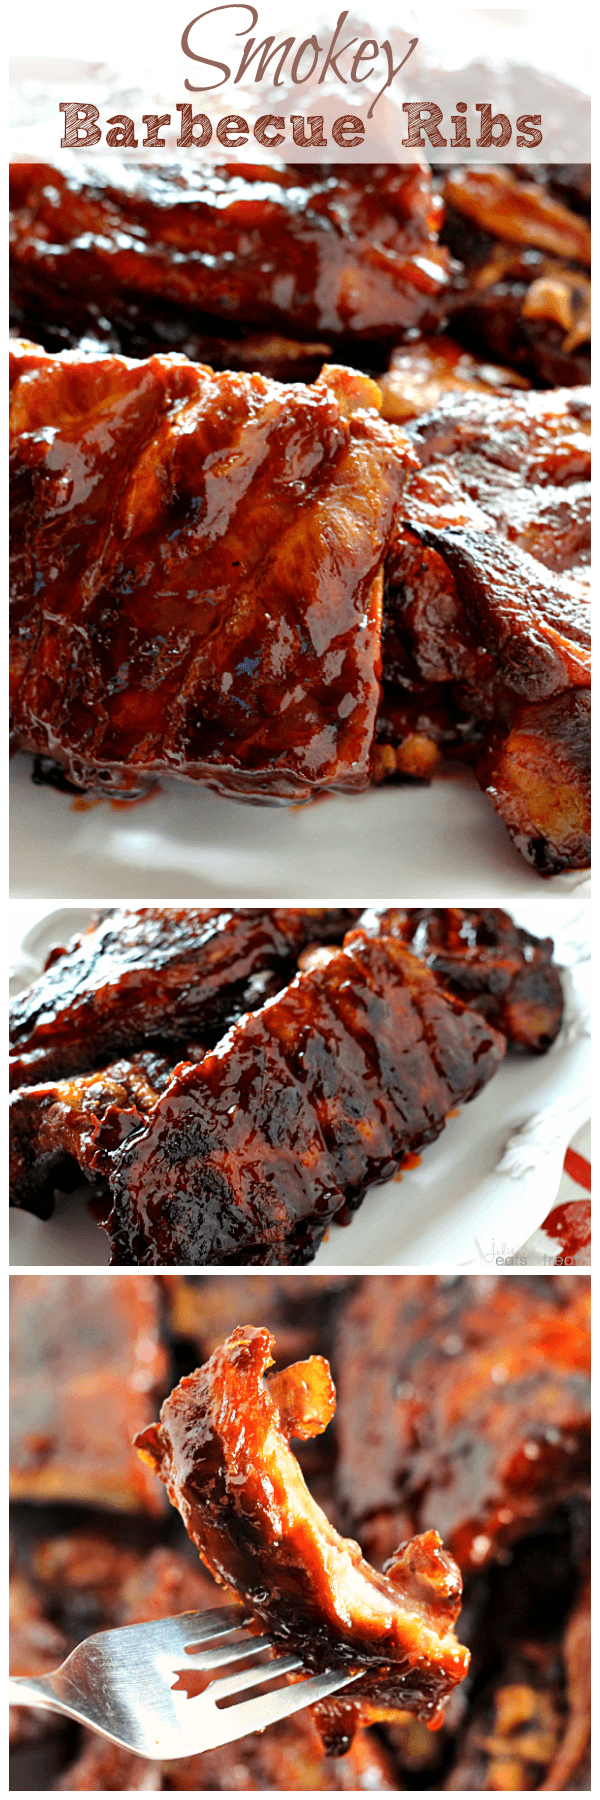 Smokey Barbecue Ribs